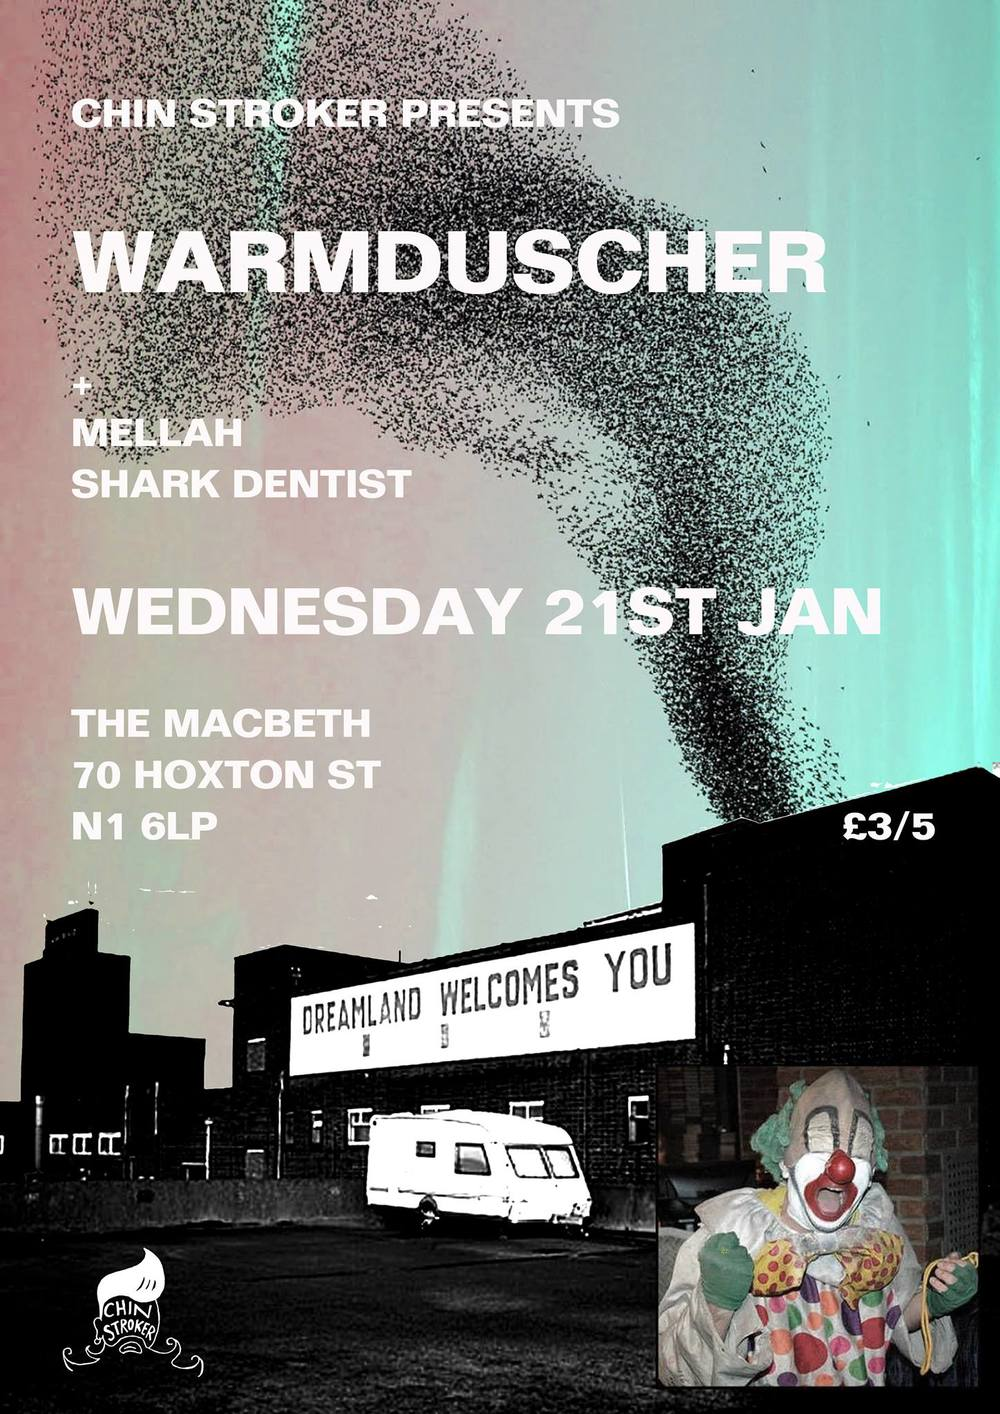 "Ladies and Gentlemen if you are zipped comfortably into your humans forms and have charged your glasses then let us begin... Chin Stroker proudly present the Eight wonder of the World...    Warmduscher    *Applause* *Applause*    ""Clams, Saul & Jack on a Fat Whites/Paranoid London/Mutado sex weekend werk-down. . . SWEAT!!!""    In support we are happy to bring you the peanut butter smooth moves punchy grooves of   Mellah   for their debut show at   The Macbeth   on its formidable sound system, plus   SHARK DENTIST   who i believe won't fail to thrill and entertain.    £3 Advance   https://billetto.co.uk/en/events/cs-warmduscher-mellah-shark-dentist    £5 OTD"